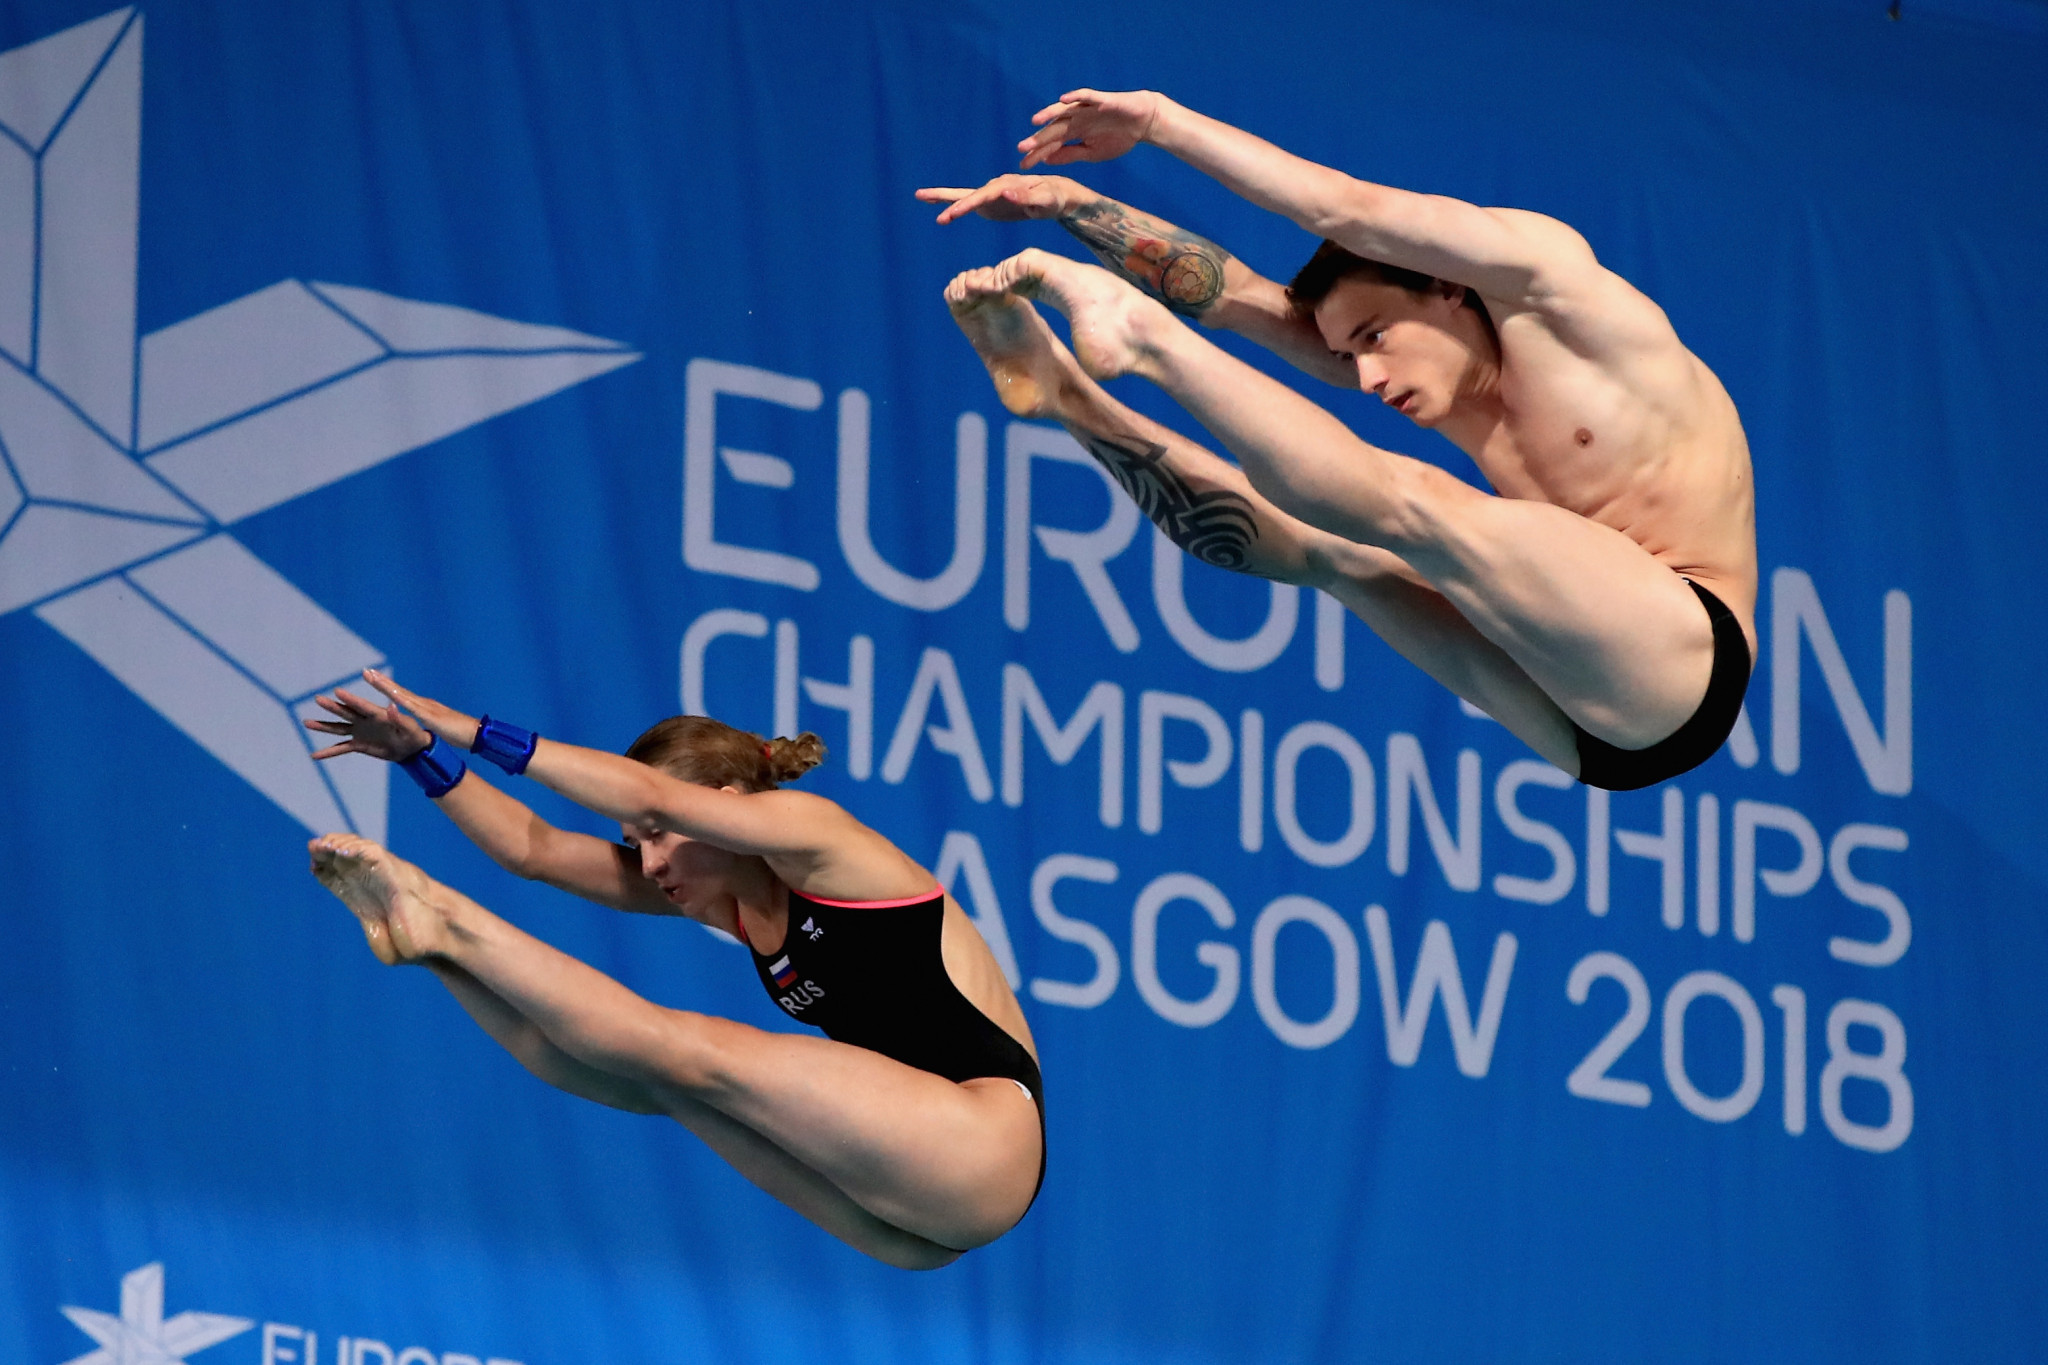 Russia's Yulia Timoshinina and Nikita Shleikher secured victory in the mixed synchronised 10m platform final ©Getty Images